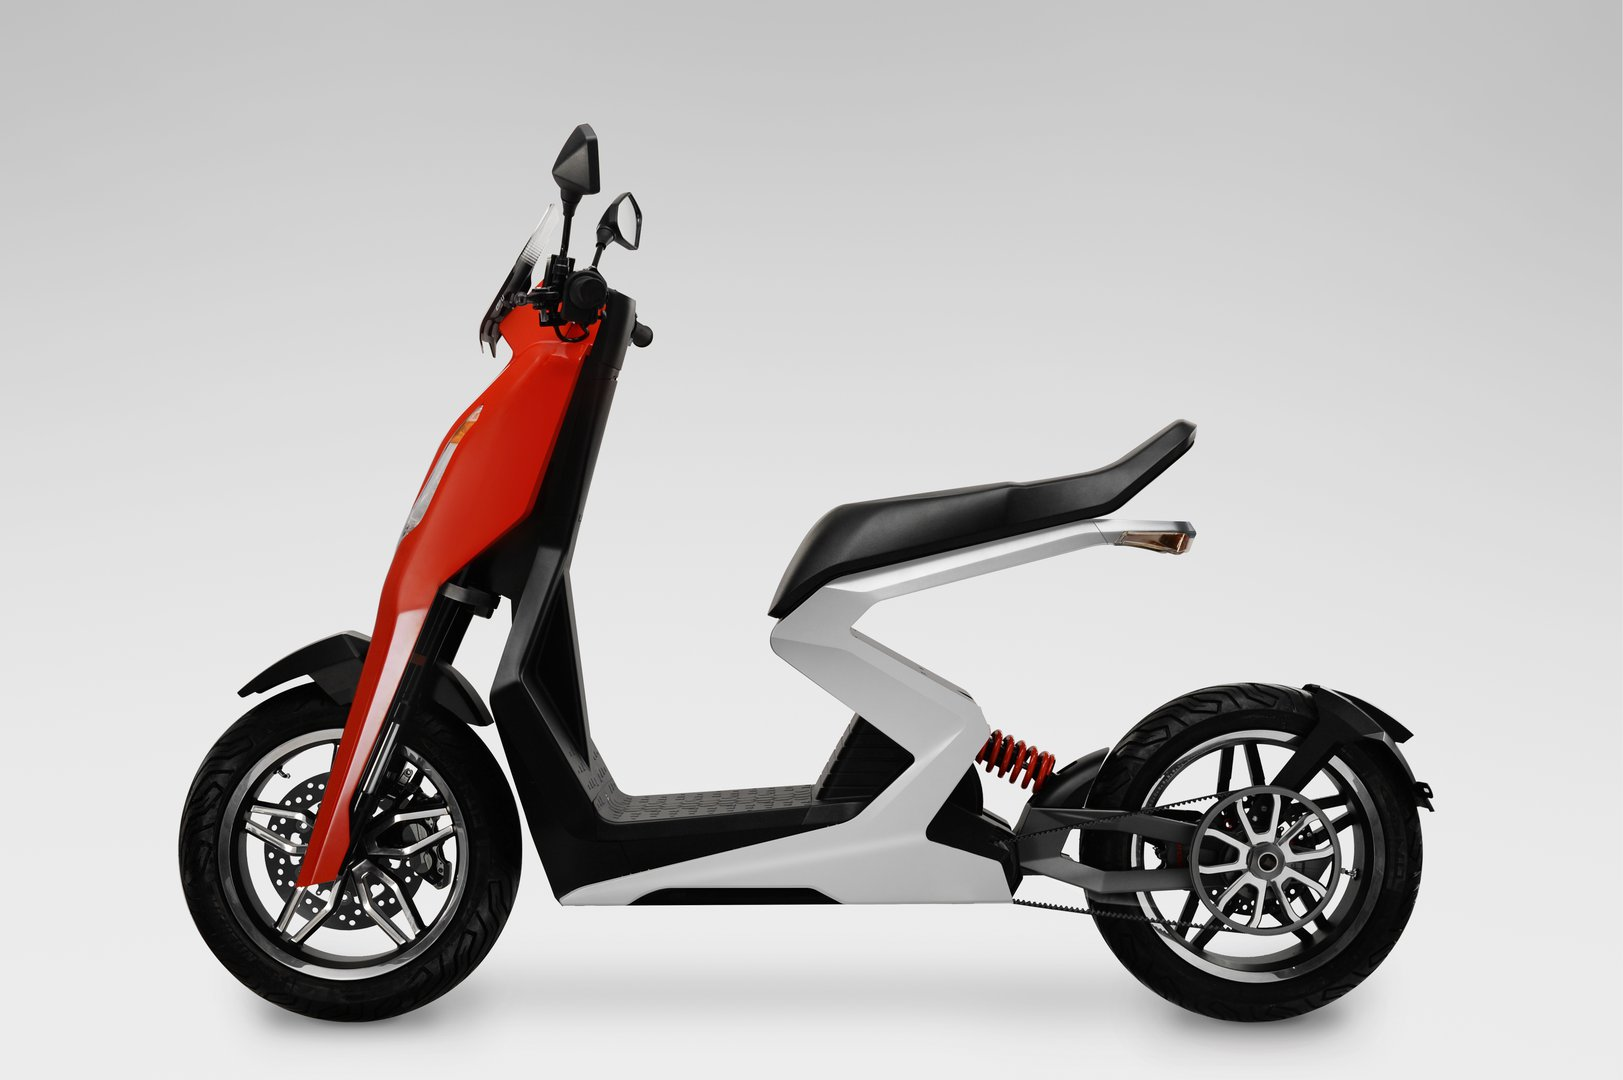 Zapp I300 Is The Newest Addition To The Electric Scooters